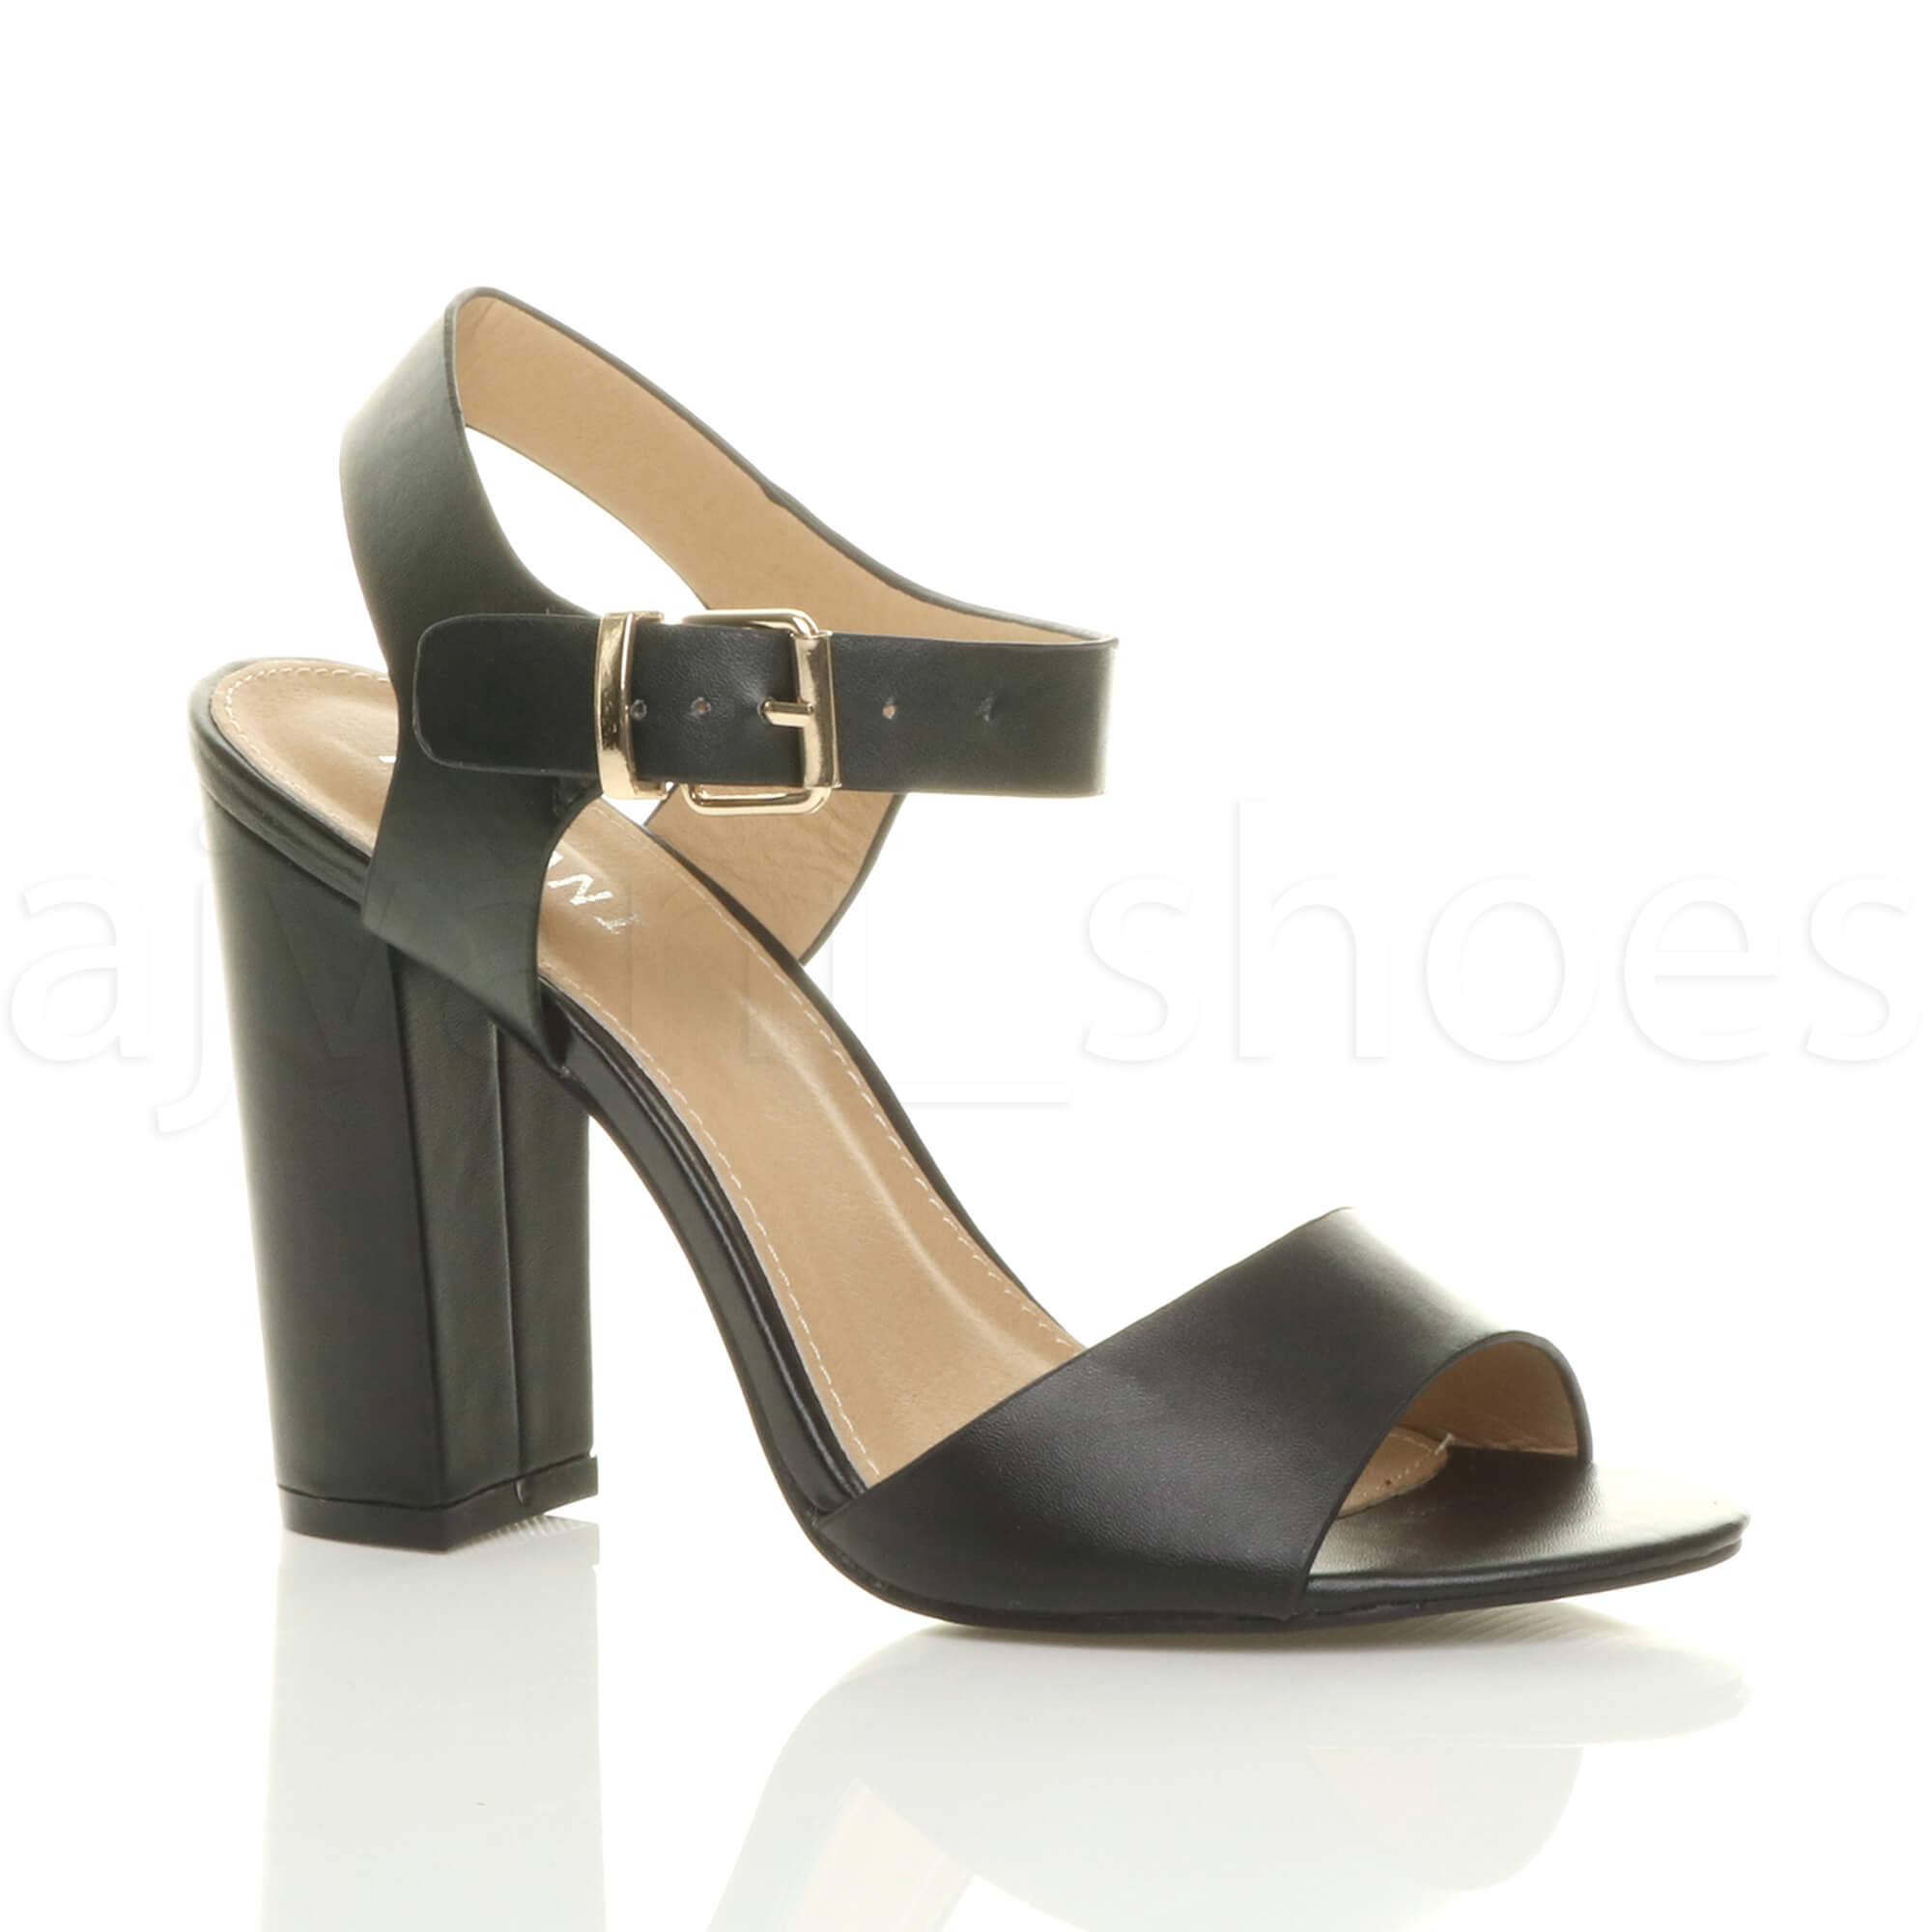 Free shipping on women's ankle strap sandals at bonjournal.tk from the best brands including Steve Madden, Sam Edelman, Vince Camuto and more. Free shipping and returns.